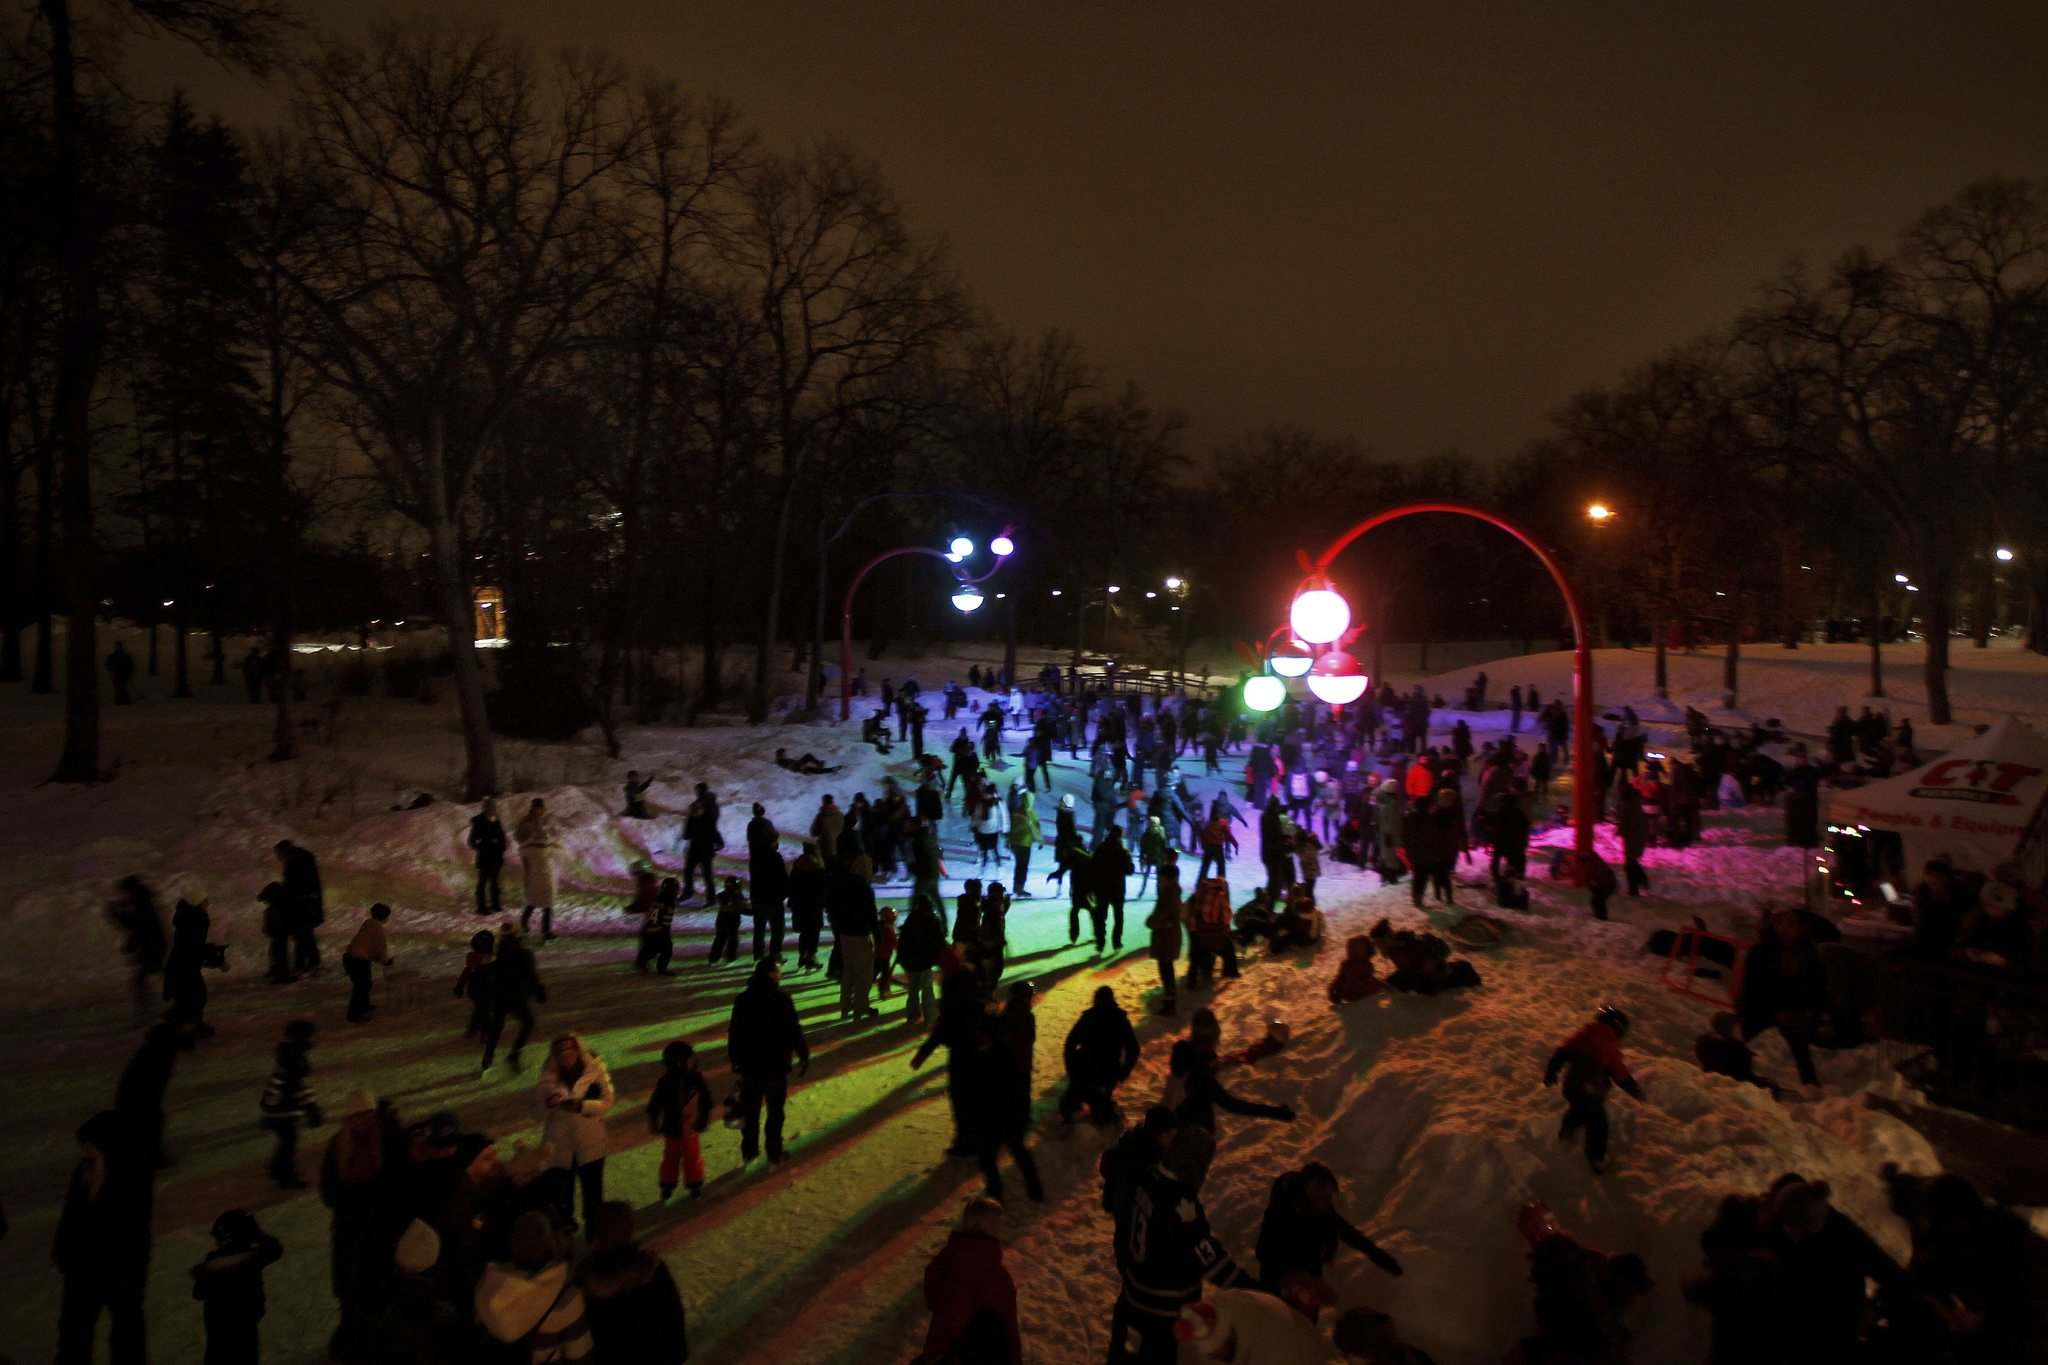 PHIL HOSSACK / WINNIPEG FREE PRESS FILES</p><p>Takashi Iwasaki and Nadi Design's interactive project Bokeh drew a huge crowd during its official opening — a skating party — at the duck pond in Kildonan Park on Jan. 12.</p></p>